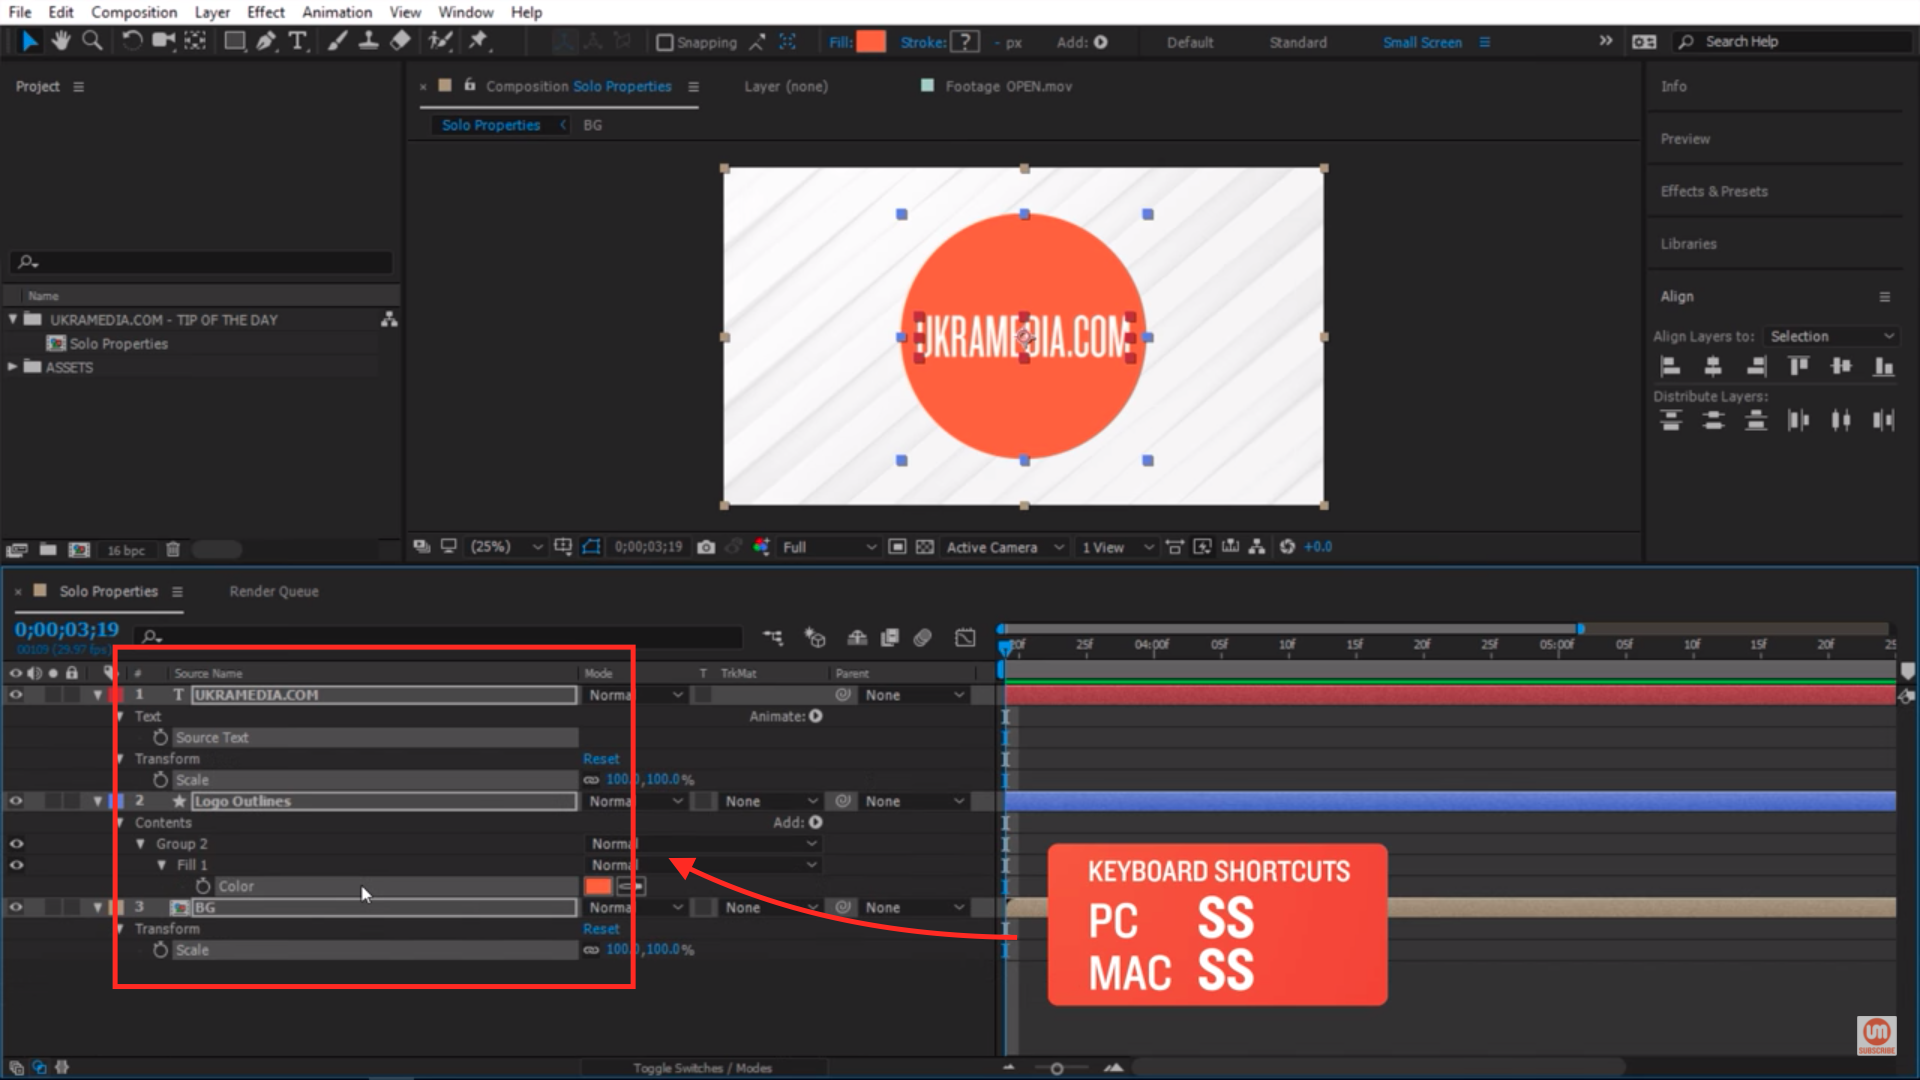 Solo Properties After Effects shortcut